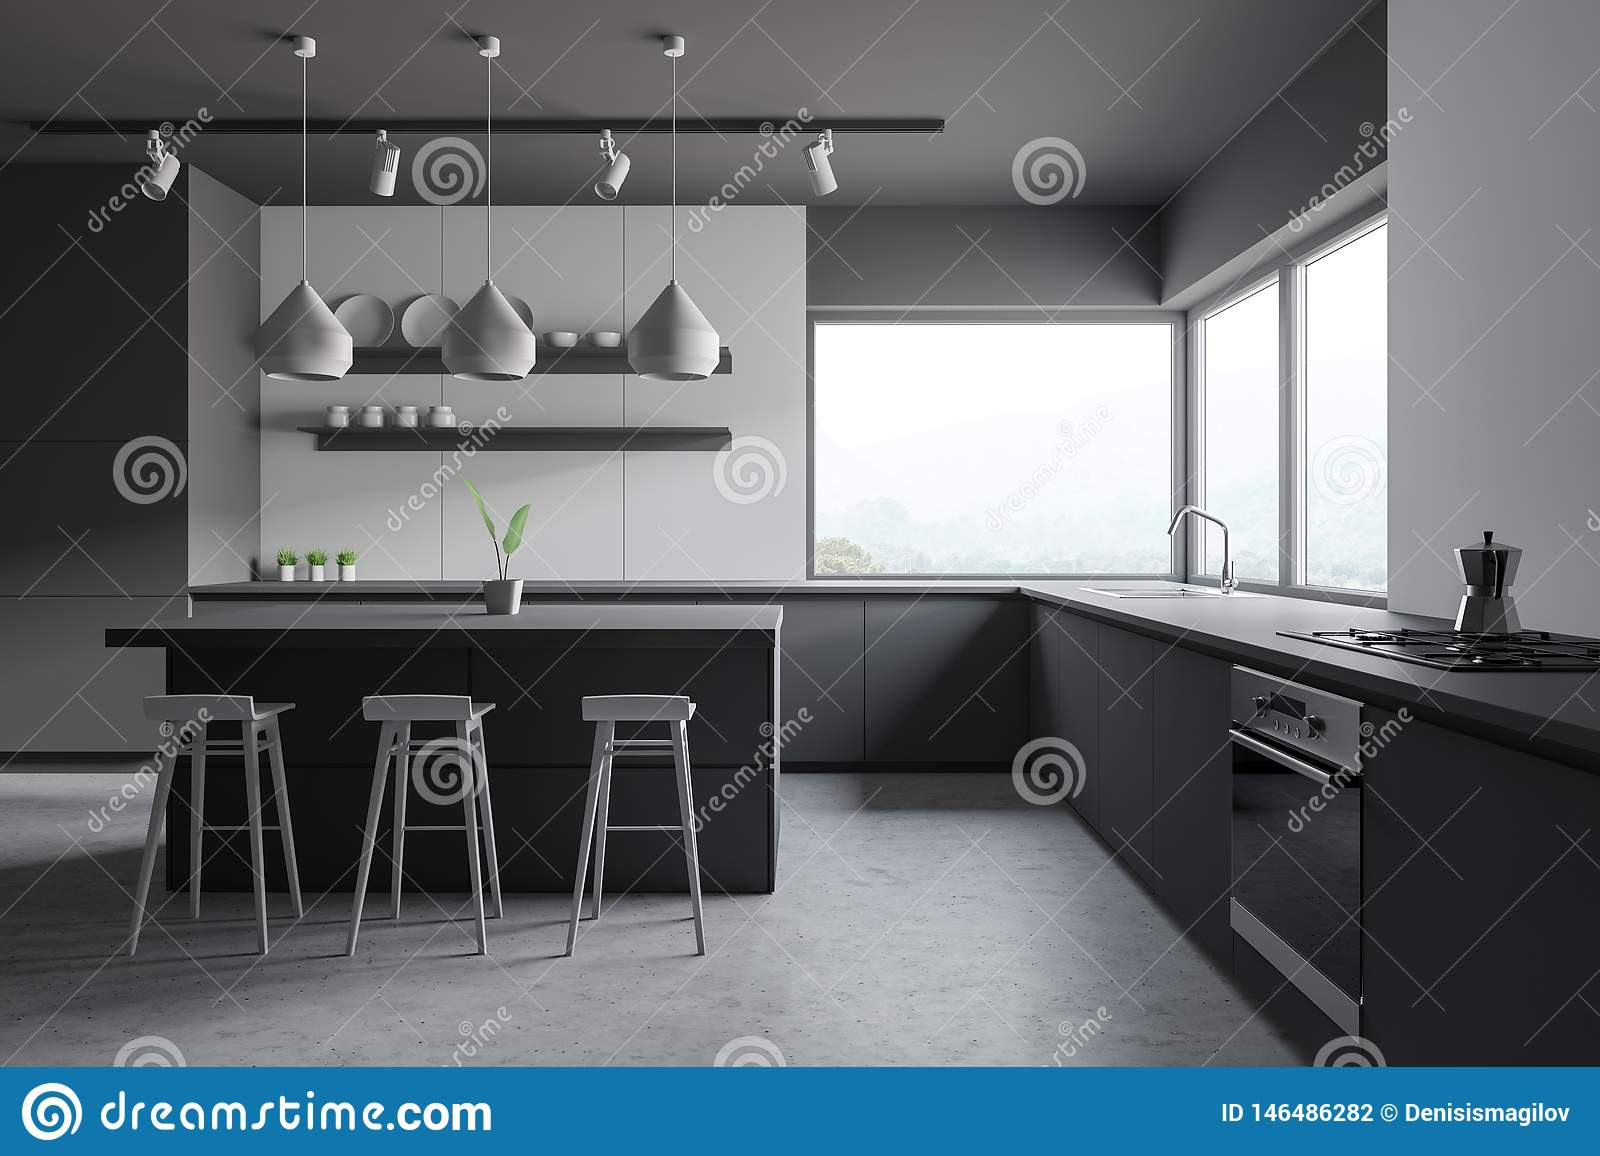 Image of: Gray And Wooden Kitchen Bar And Stools Stock Illustration Illustration Of Island Luxury 146486282